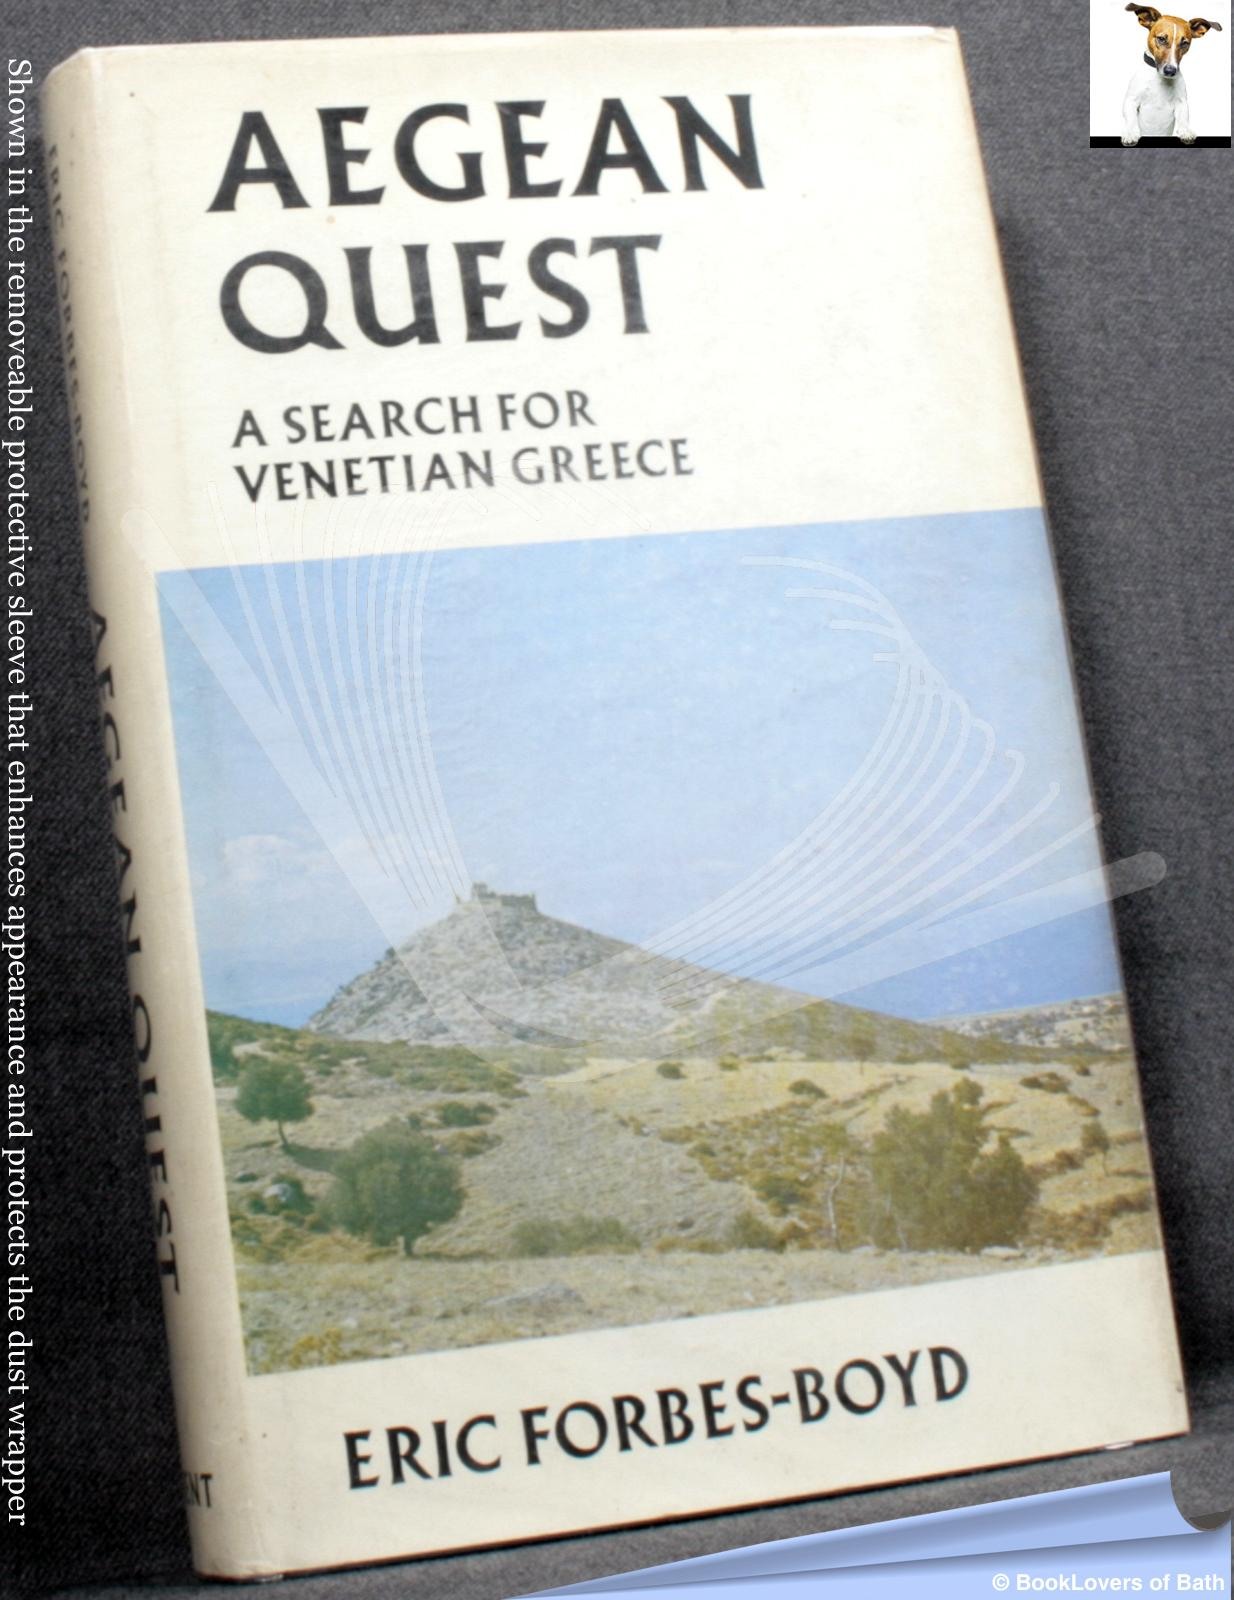 Aegean Quest: A Search for Venetian Greece - Eric Forbes-Boyd